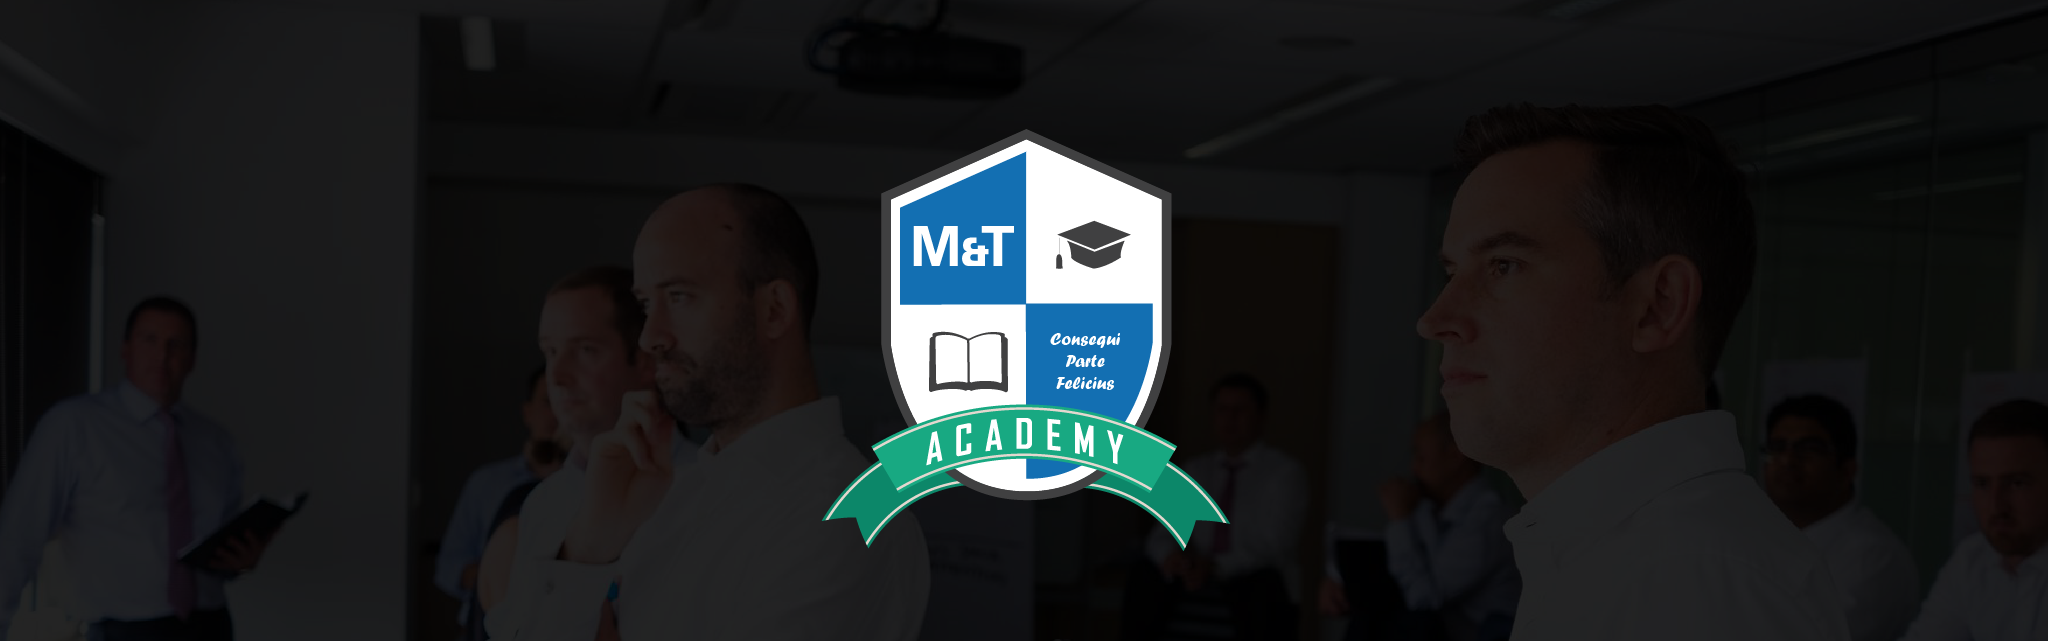 M&T Academy launched with People of Influence